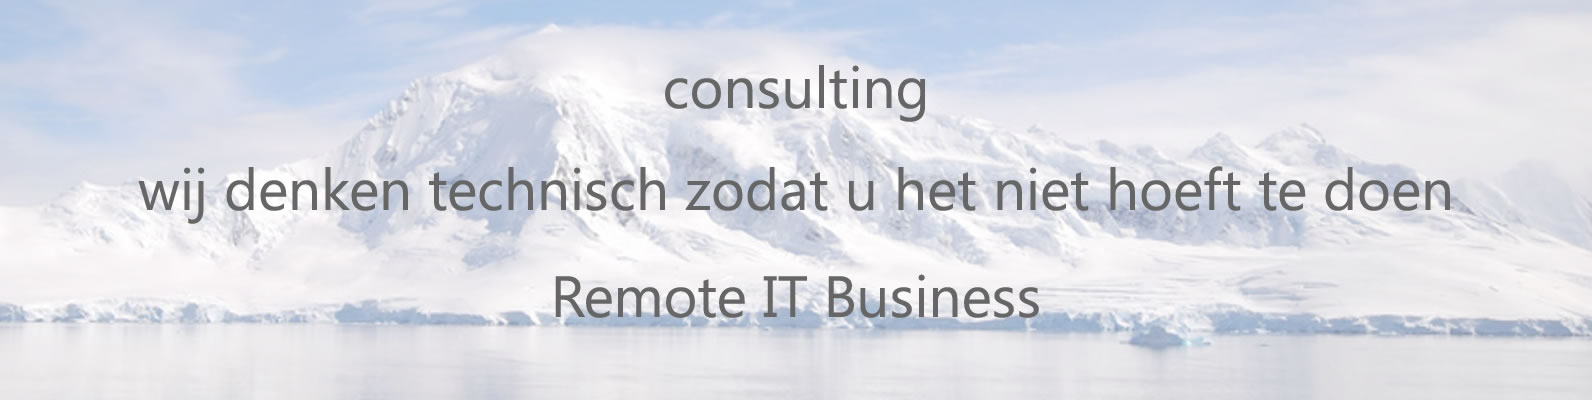 consulting.www.ritb.nl